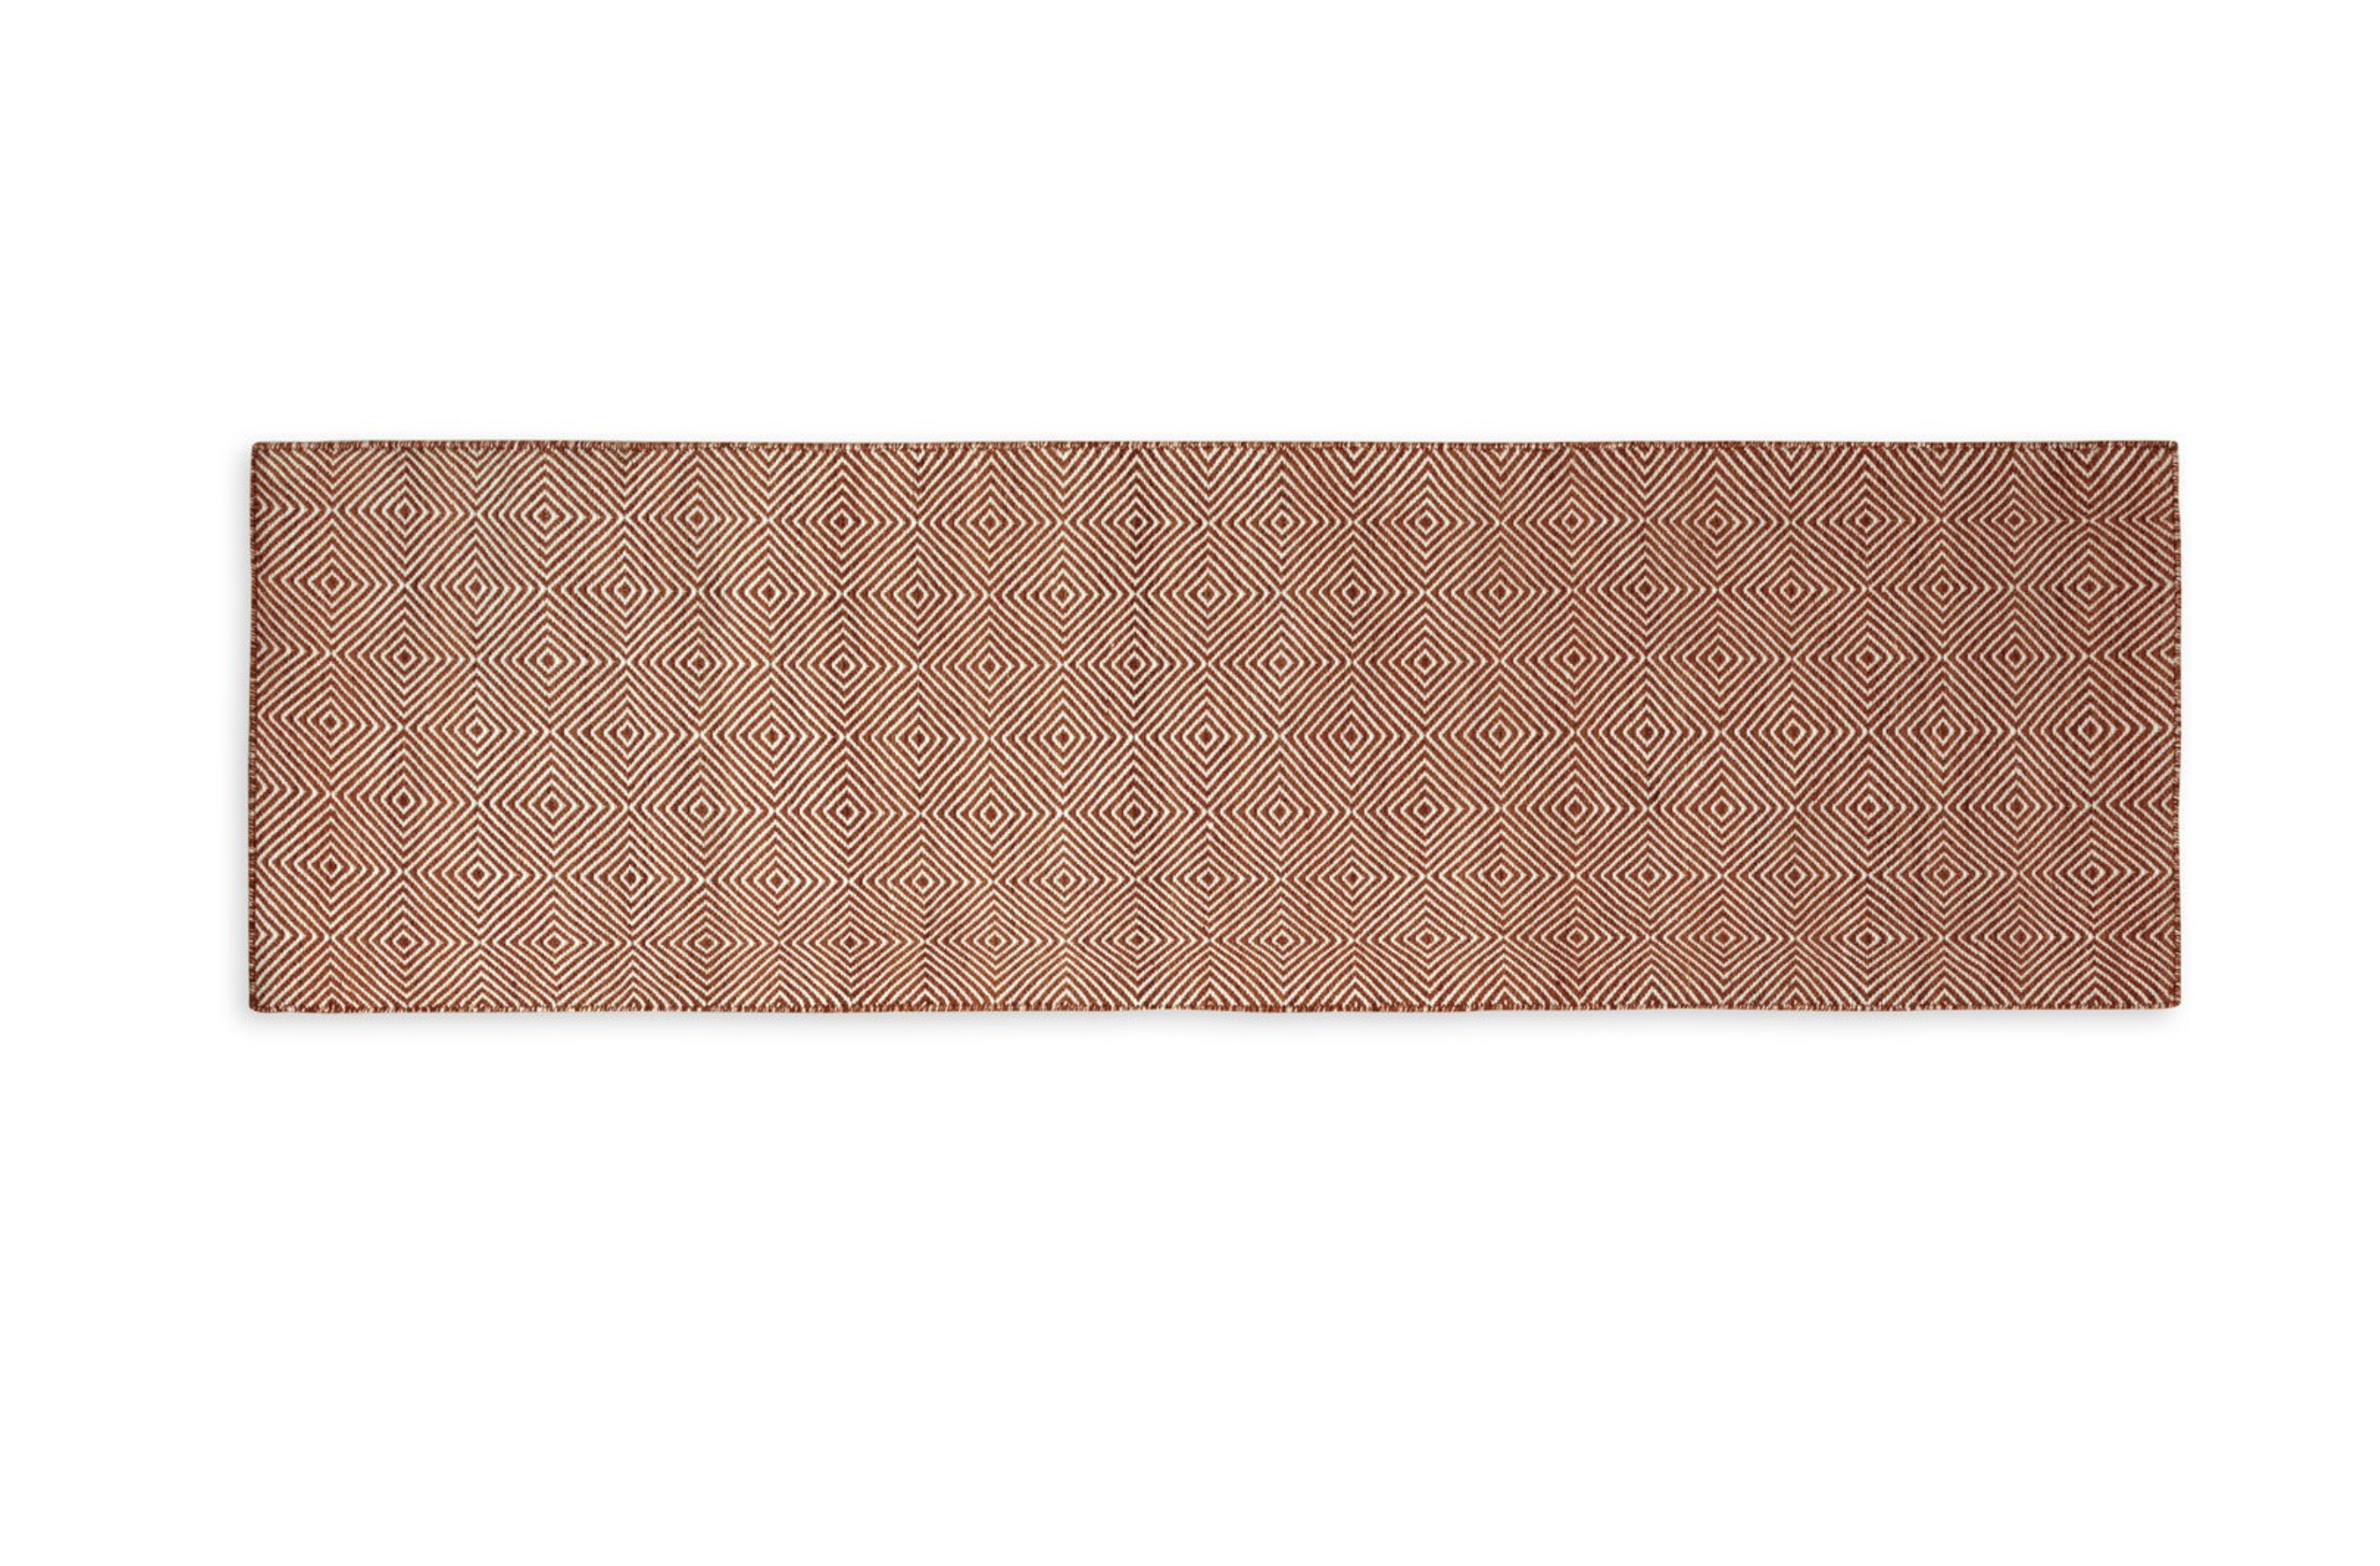 Romilly recycled plastic rug, £149 from Heal's